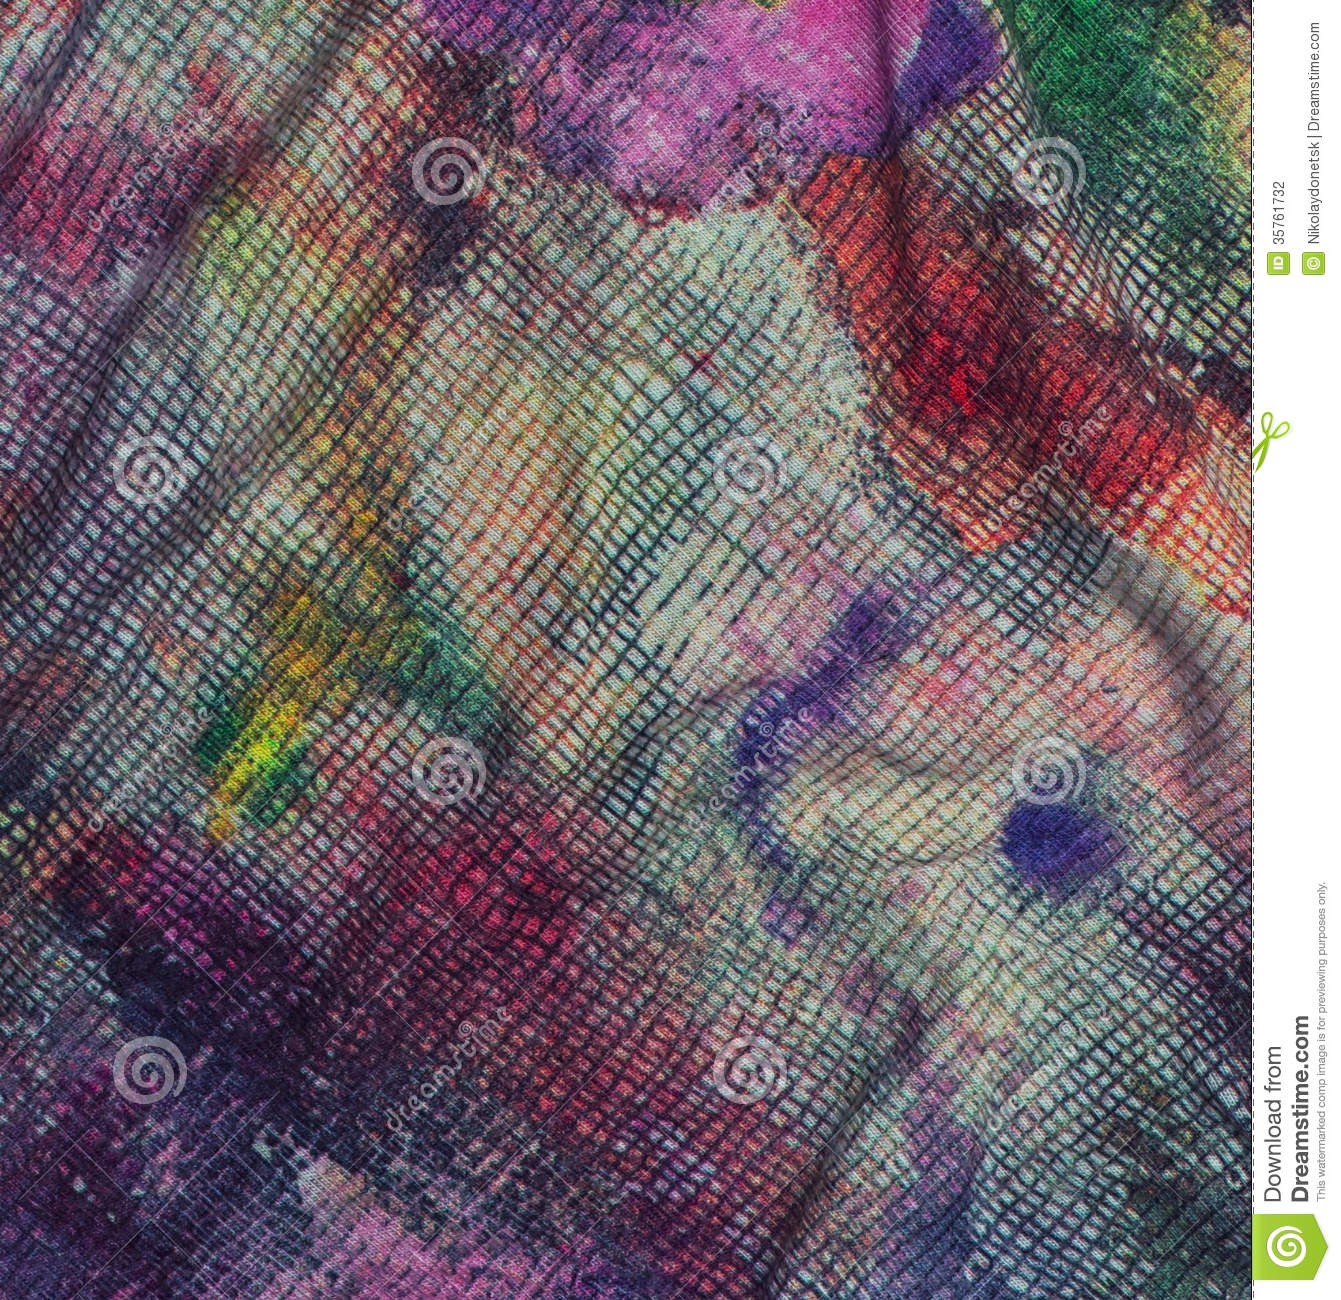 Textile Fabric Watercolor Color Code Stock Photography - Image: 35761732